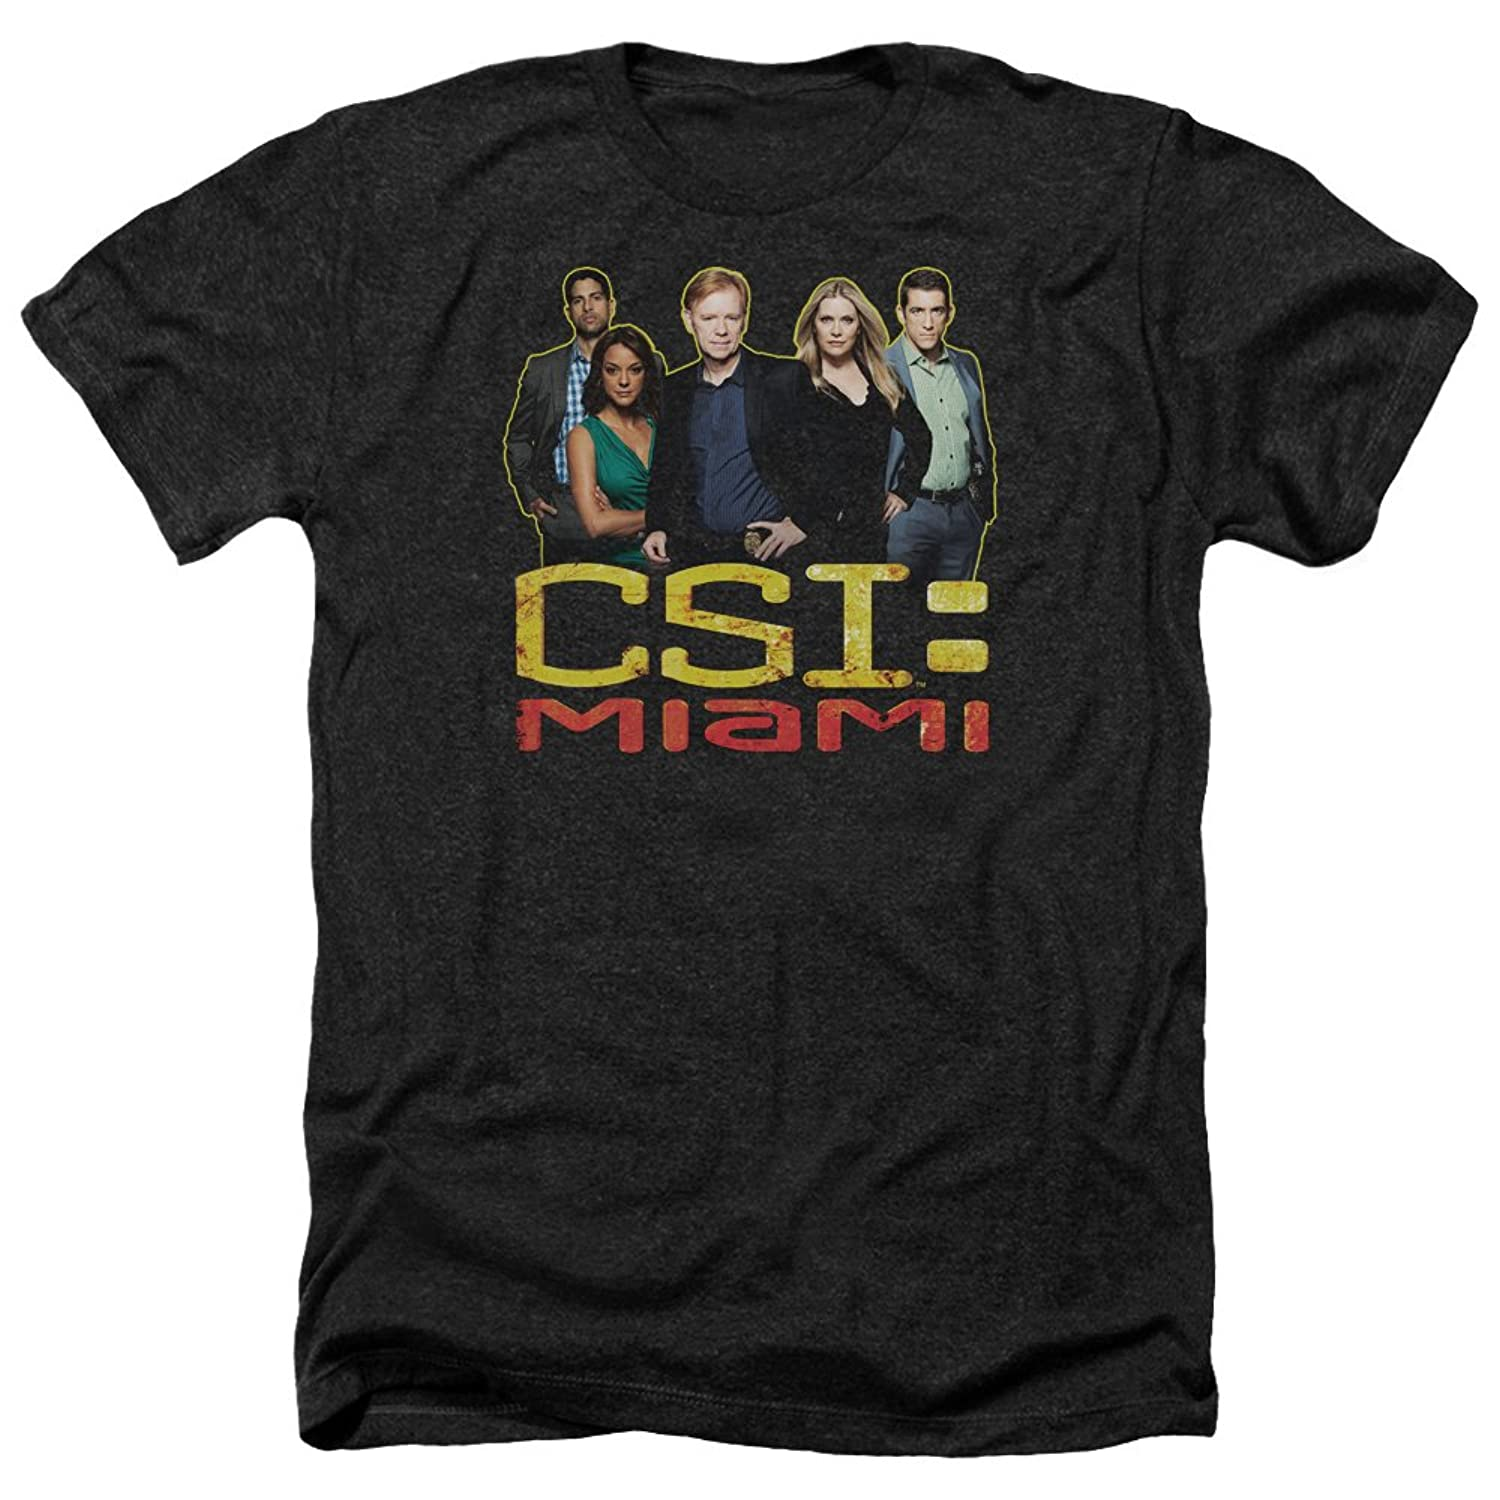 CSI Miami TV Show CBS The Cast In Black Adult Heather T-Shirt Tee